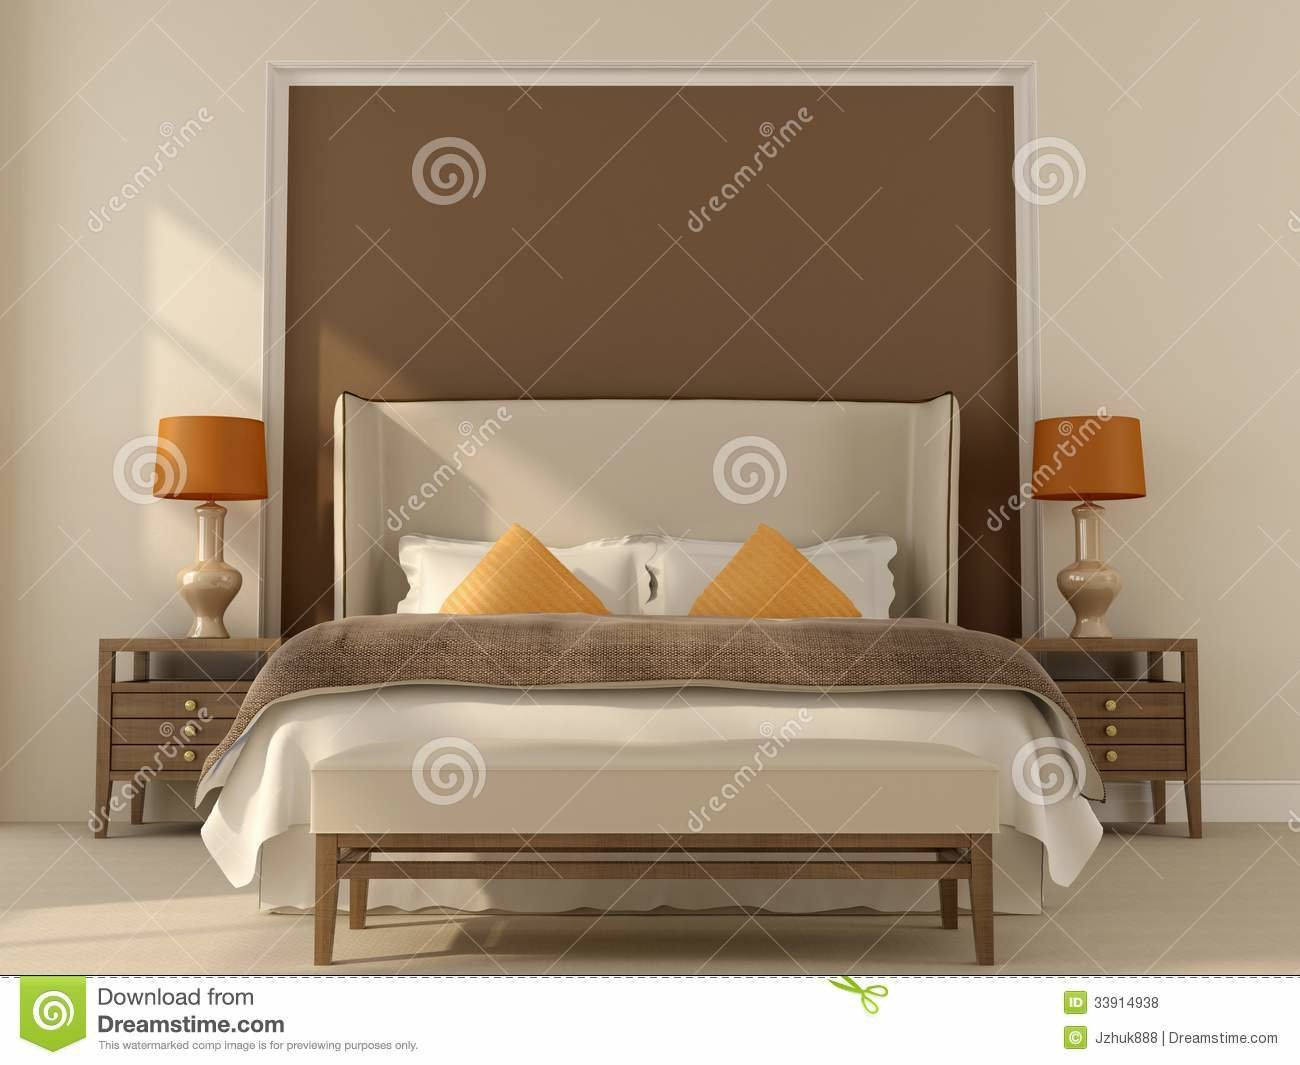 Best Beige Bedroom With Orange Decor Stock Illustration With Pictures